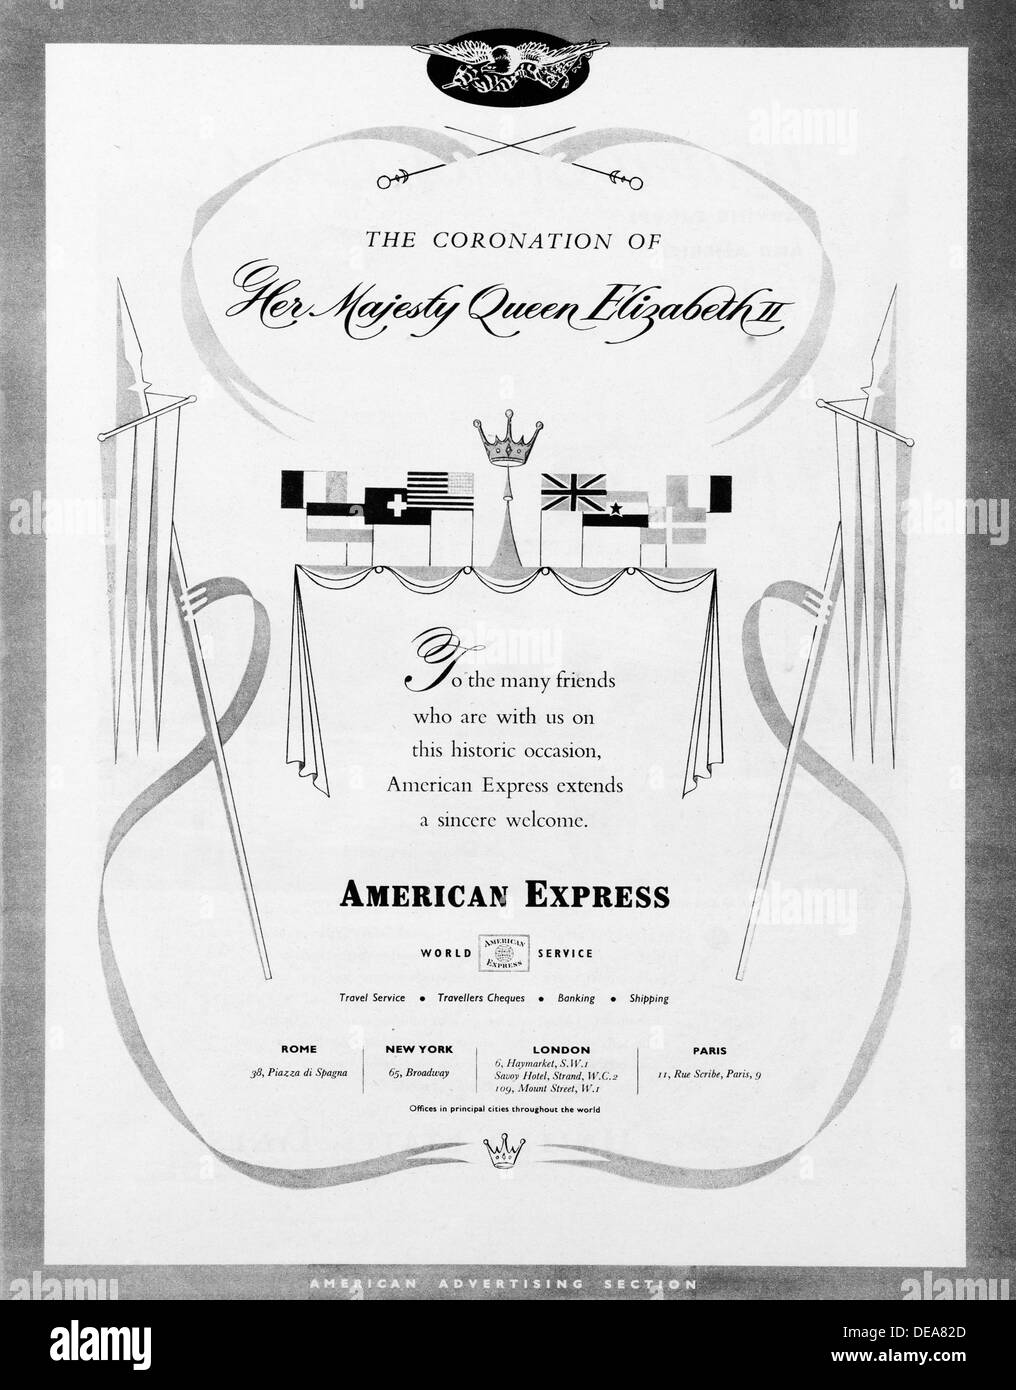 American Express advert in the UK in 1953 - Stock Image